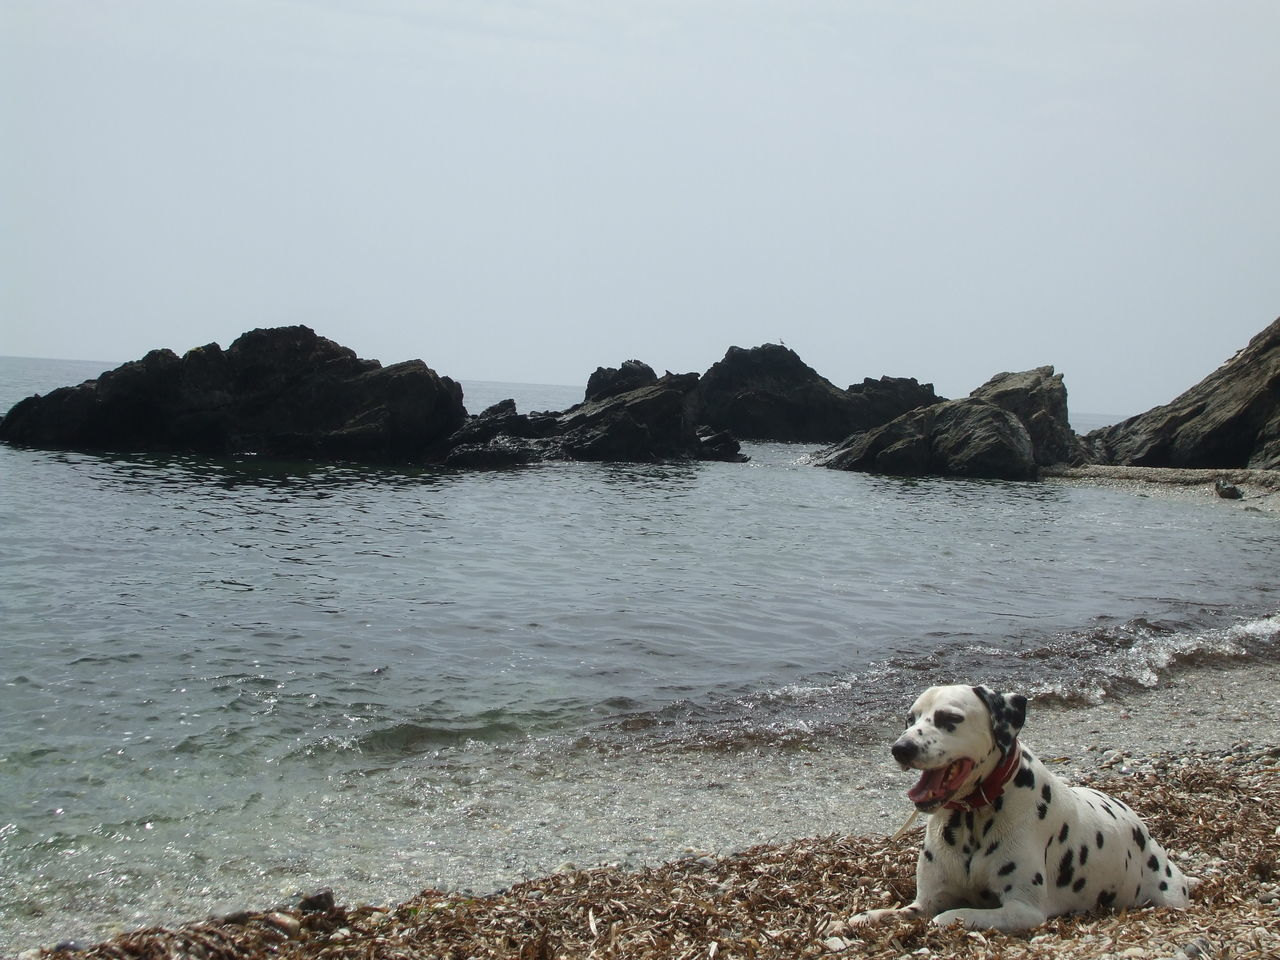 dog, pets, domestic animals, one animal, animal themes, nature, sea, outdoors, mammal, day, water, no people, tranquility, beauty in nature, sky